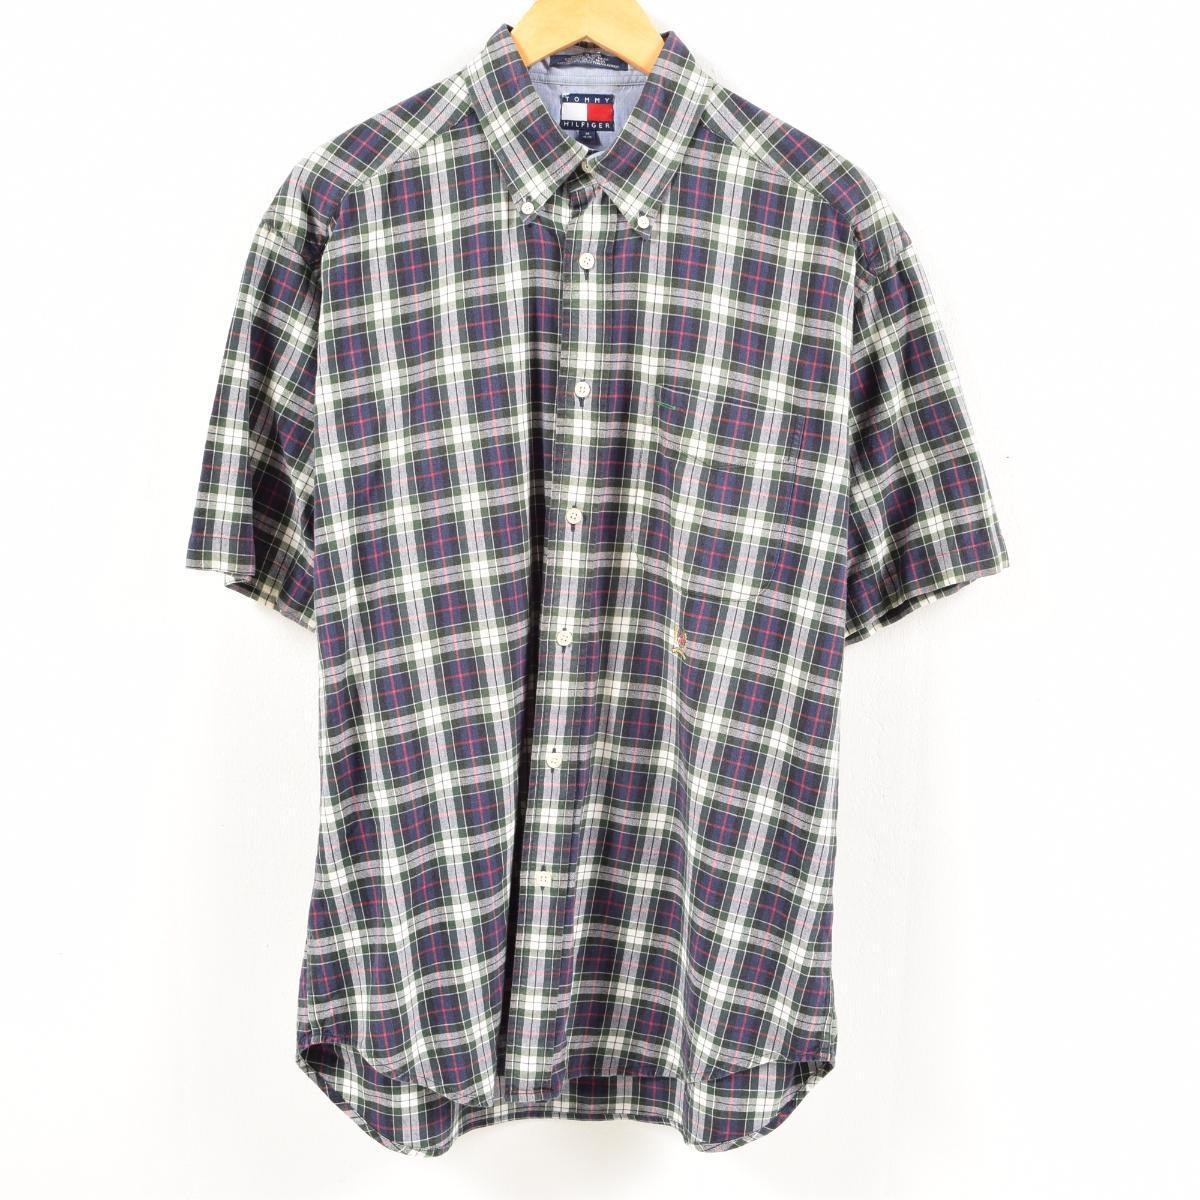 811b0362 90s トミーヒルフィガー TOMMY HILFIGER tartan check short sleeves check shirt men XL  /was7390 who are button-downed